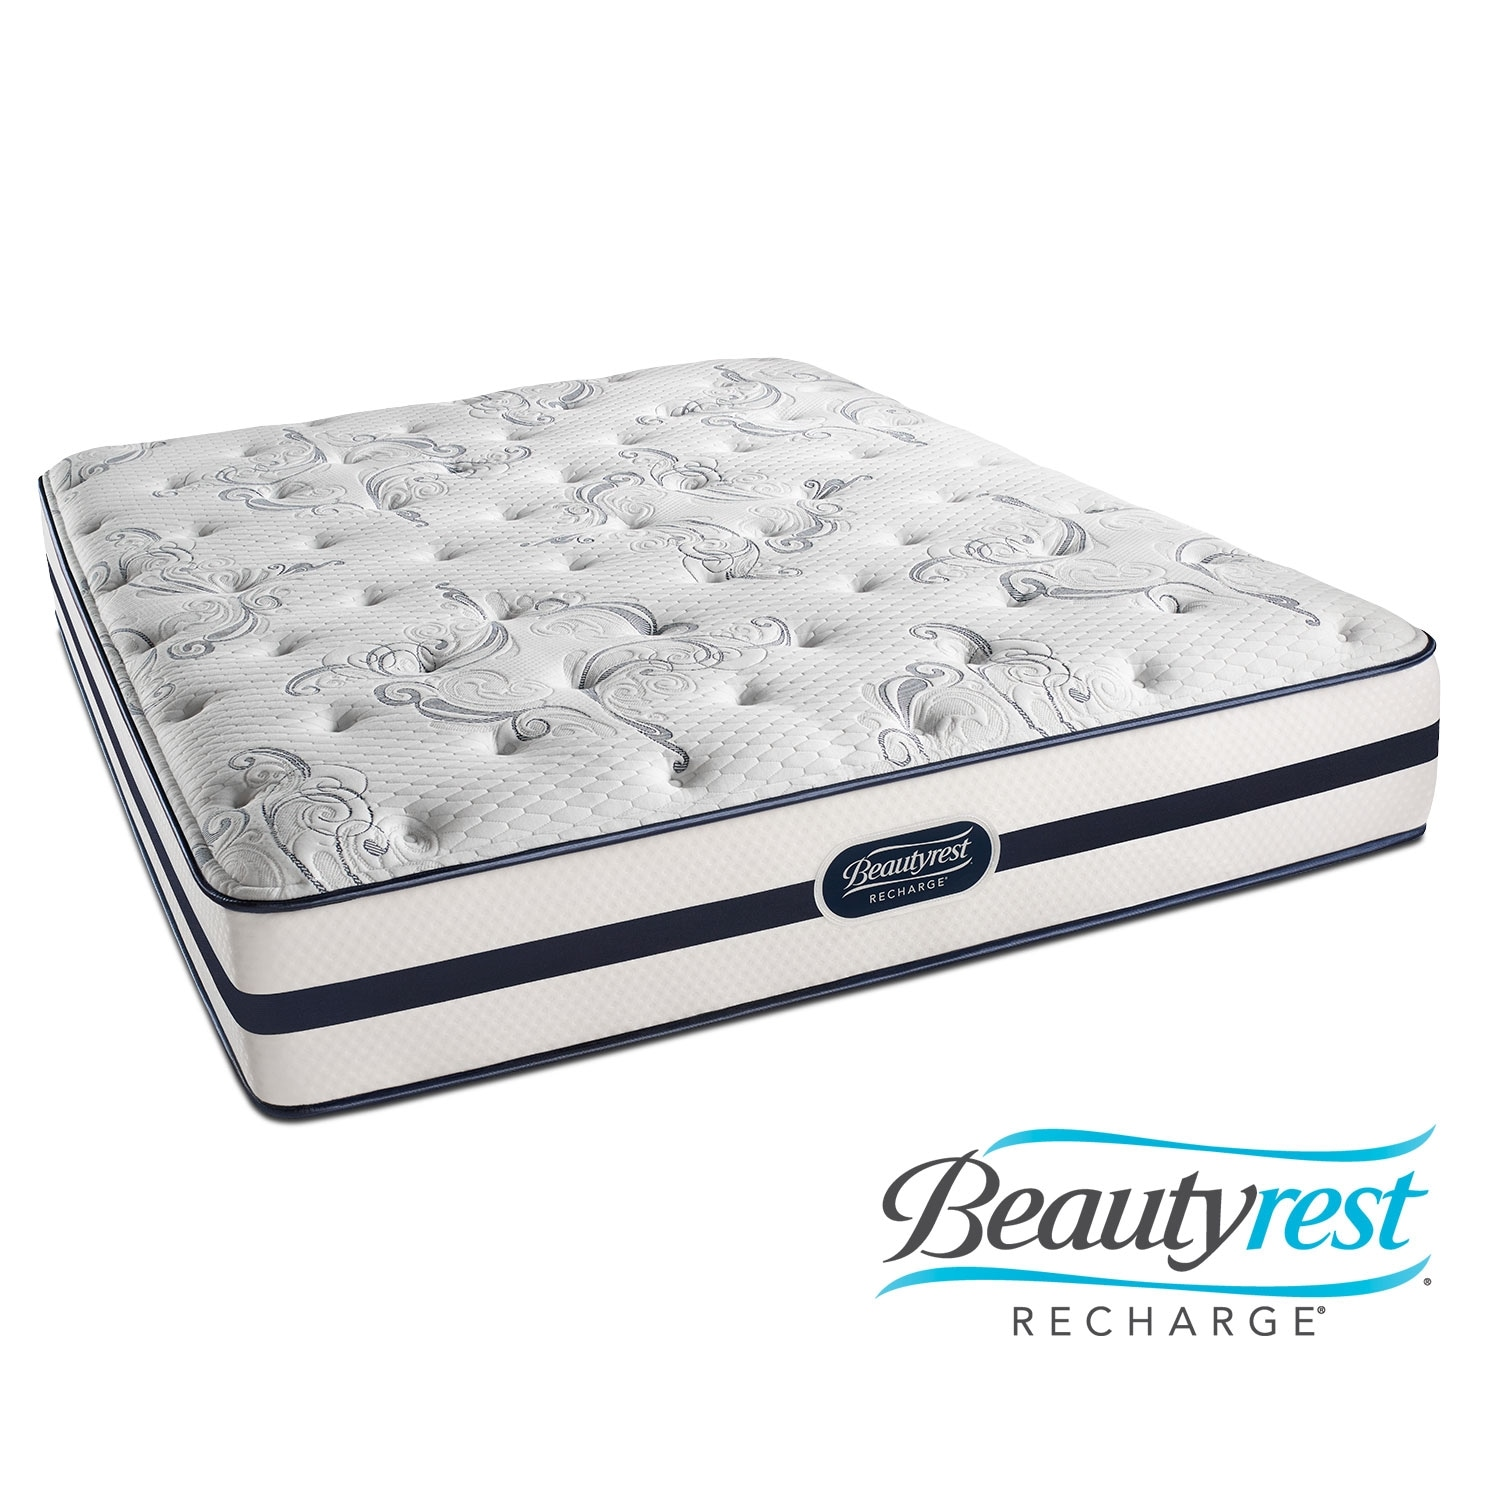 Mattresses and Bedding - Justine Plush Queen Mattress